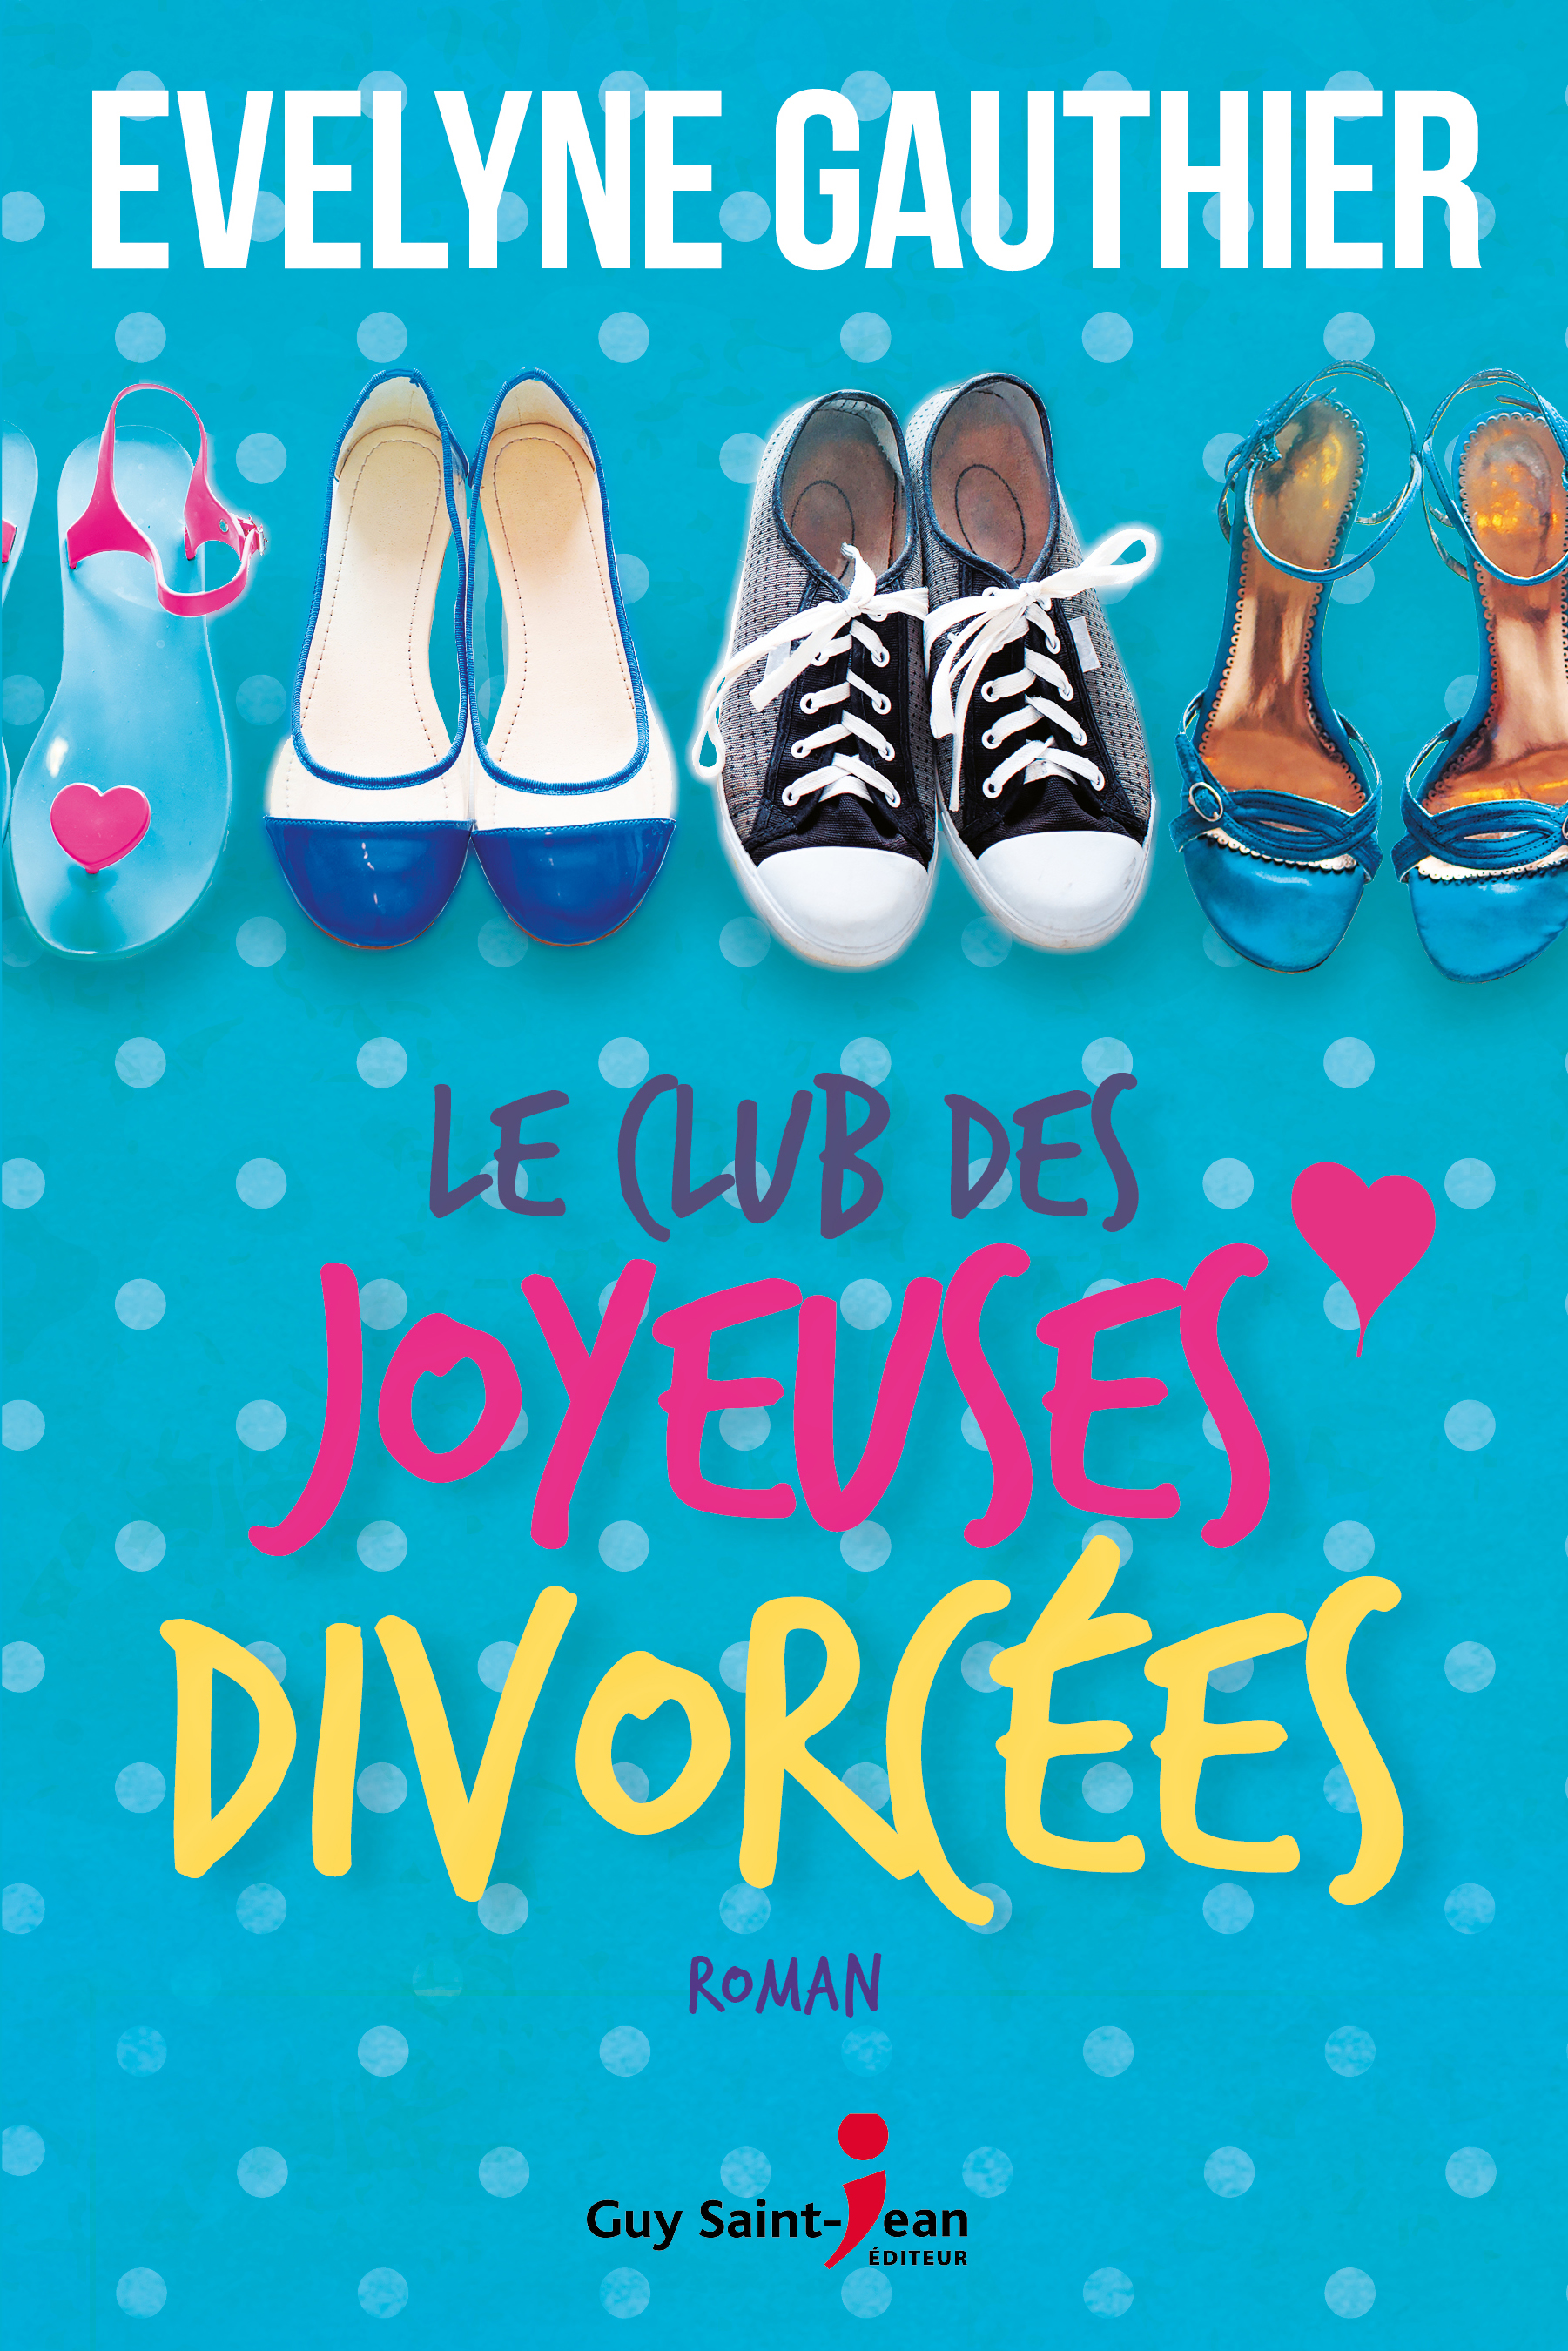 c1-divorcees